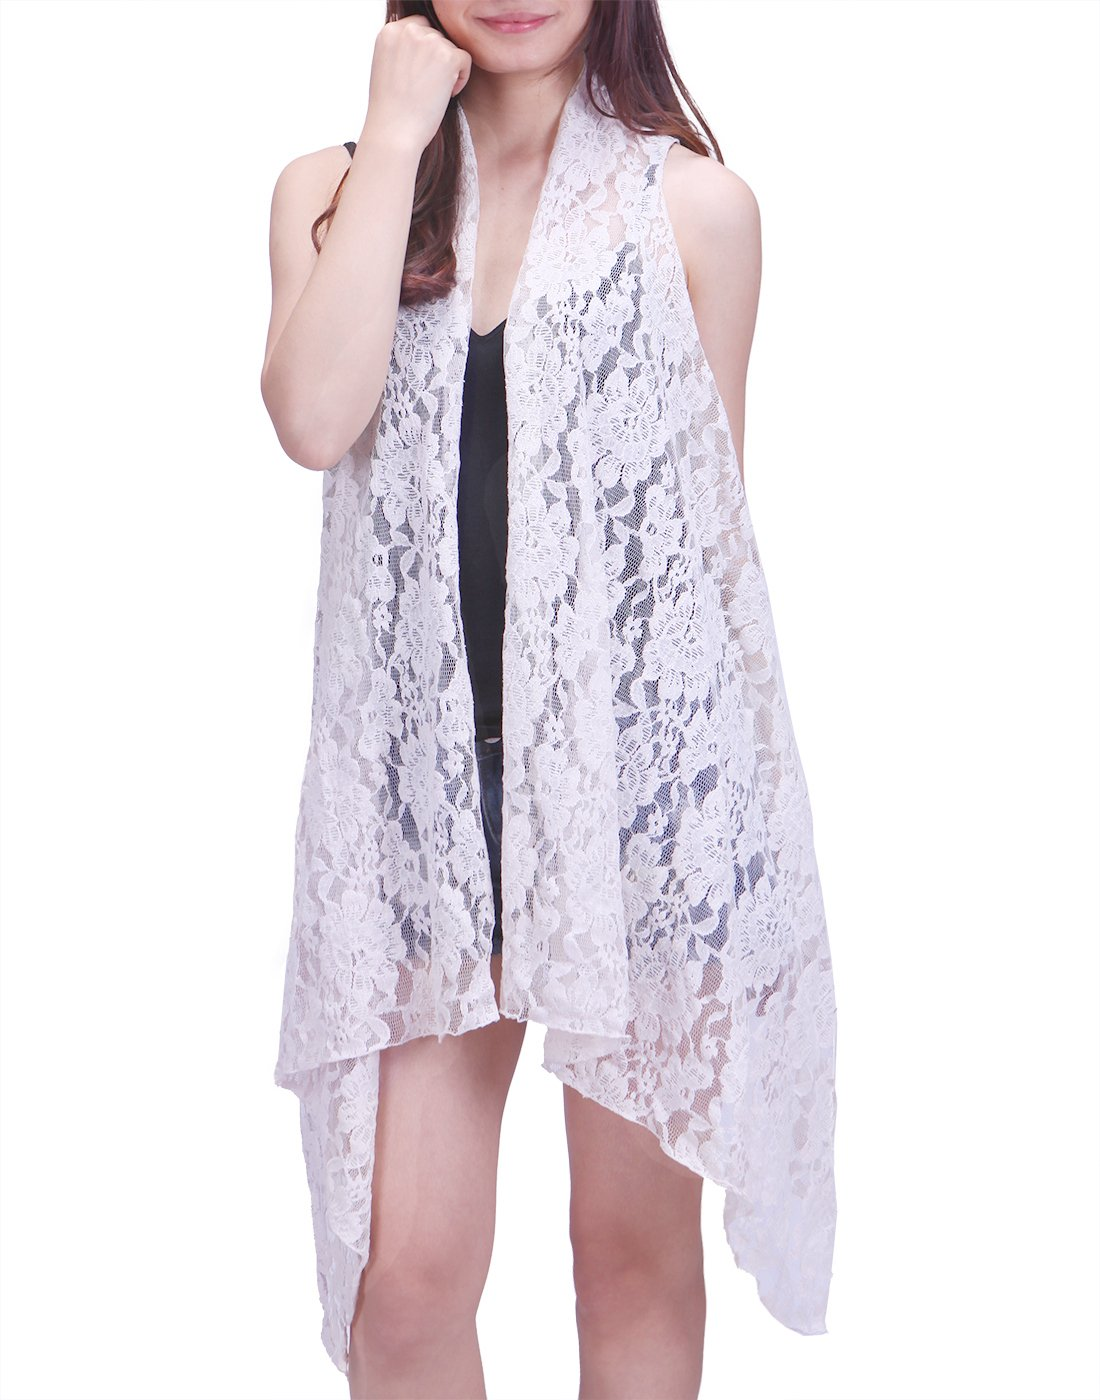 HDE Womens Open Front Lace Cardigan Sleeveless Asymmetric Drape Hem Vest Coverup